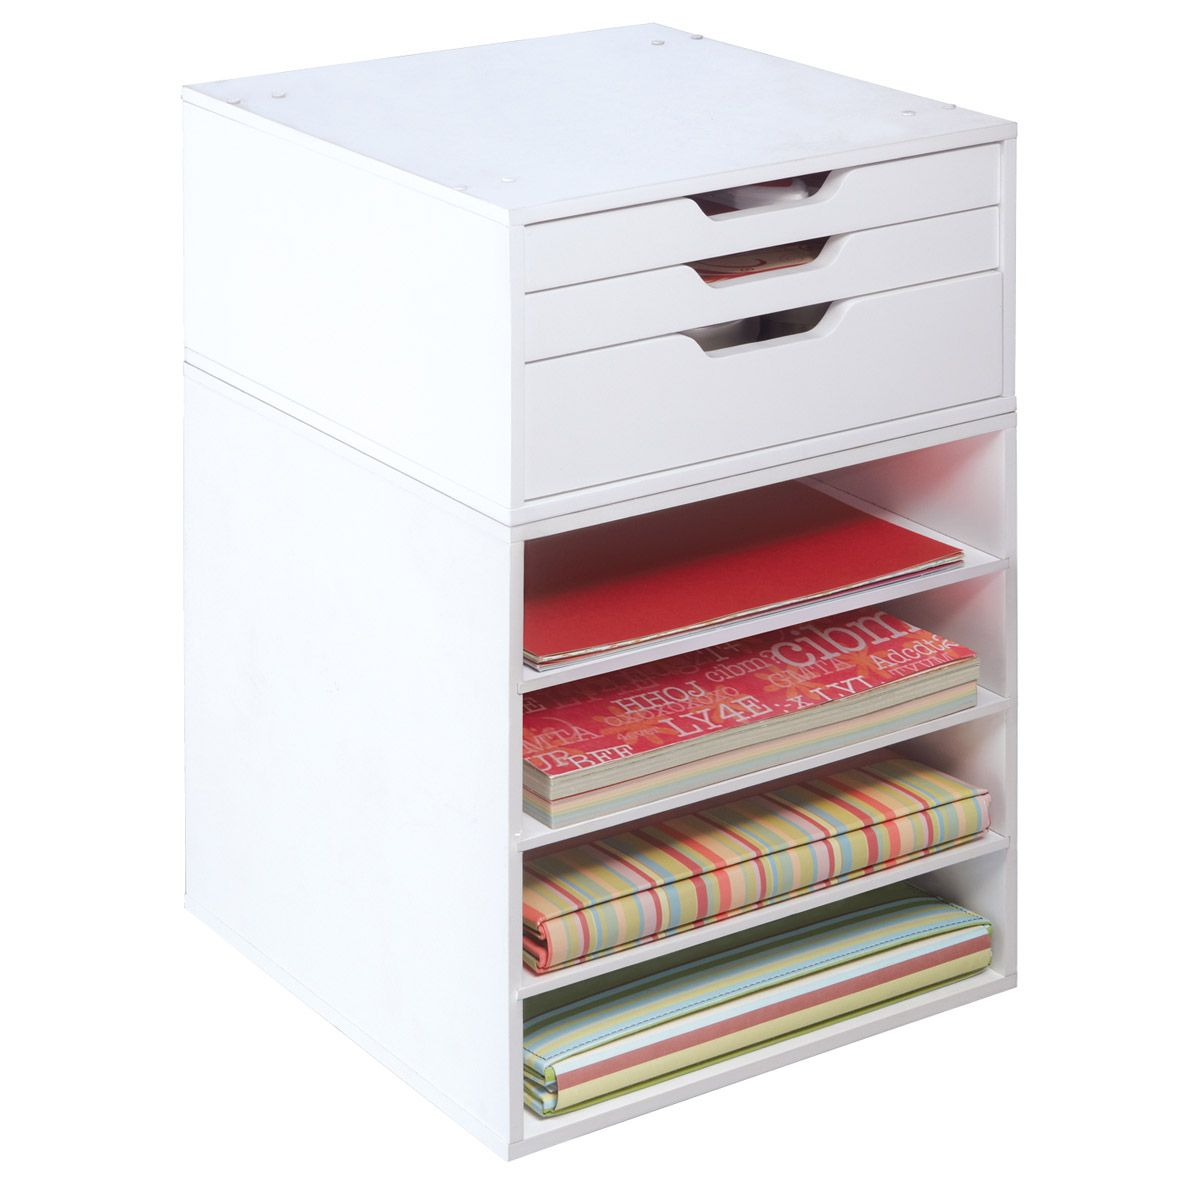 3 Drawer Organizer Cube From Michael S Is Great For